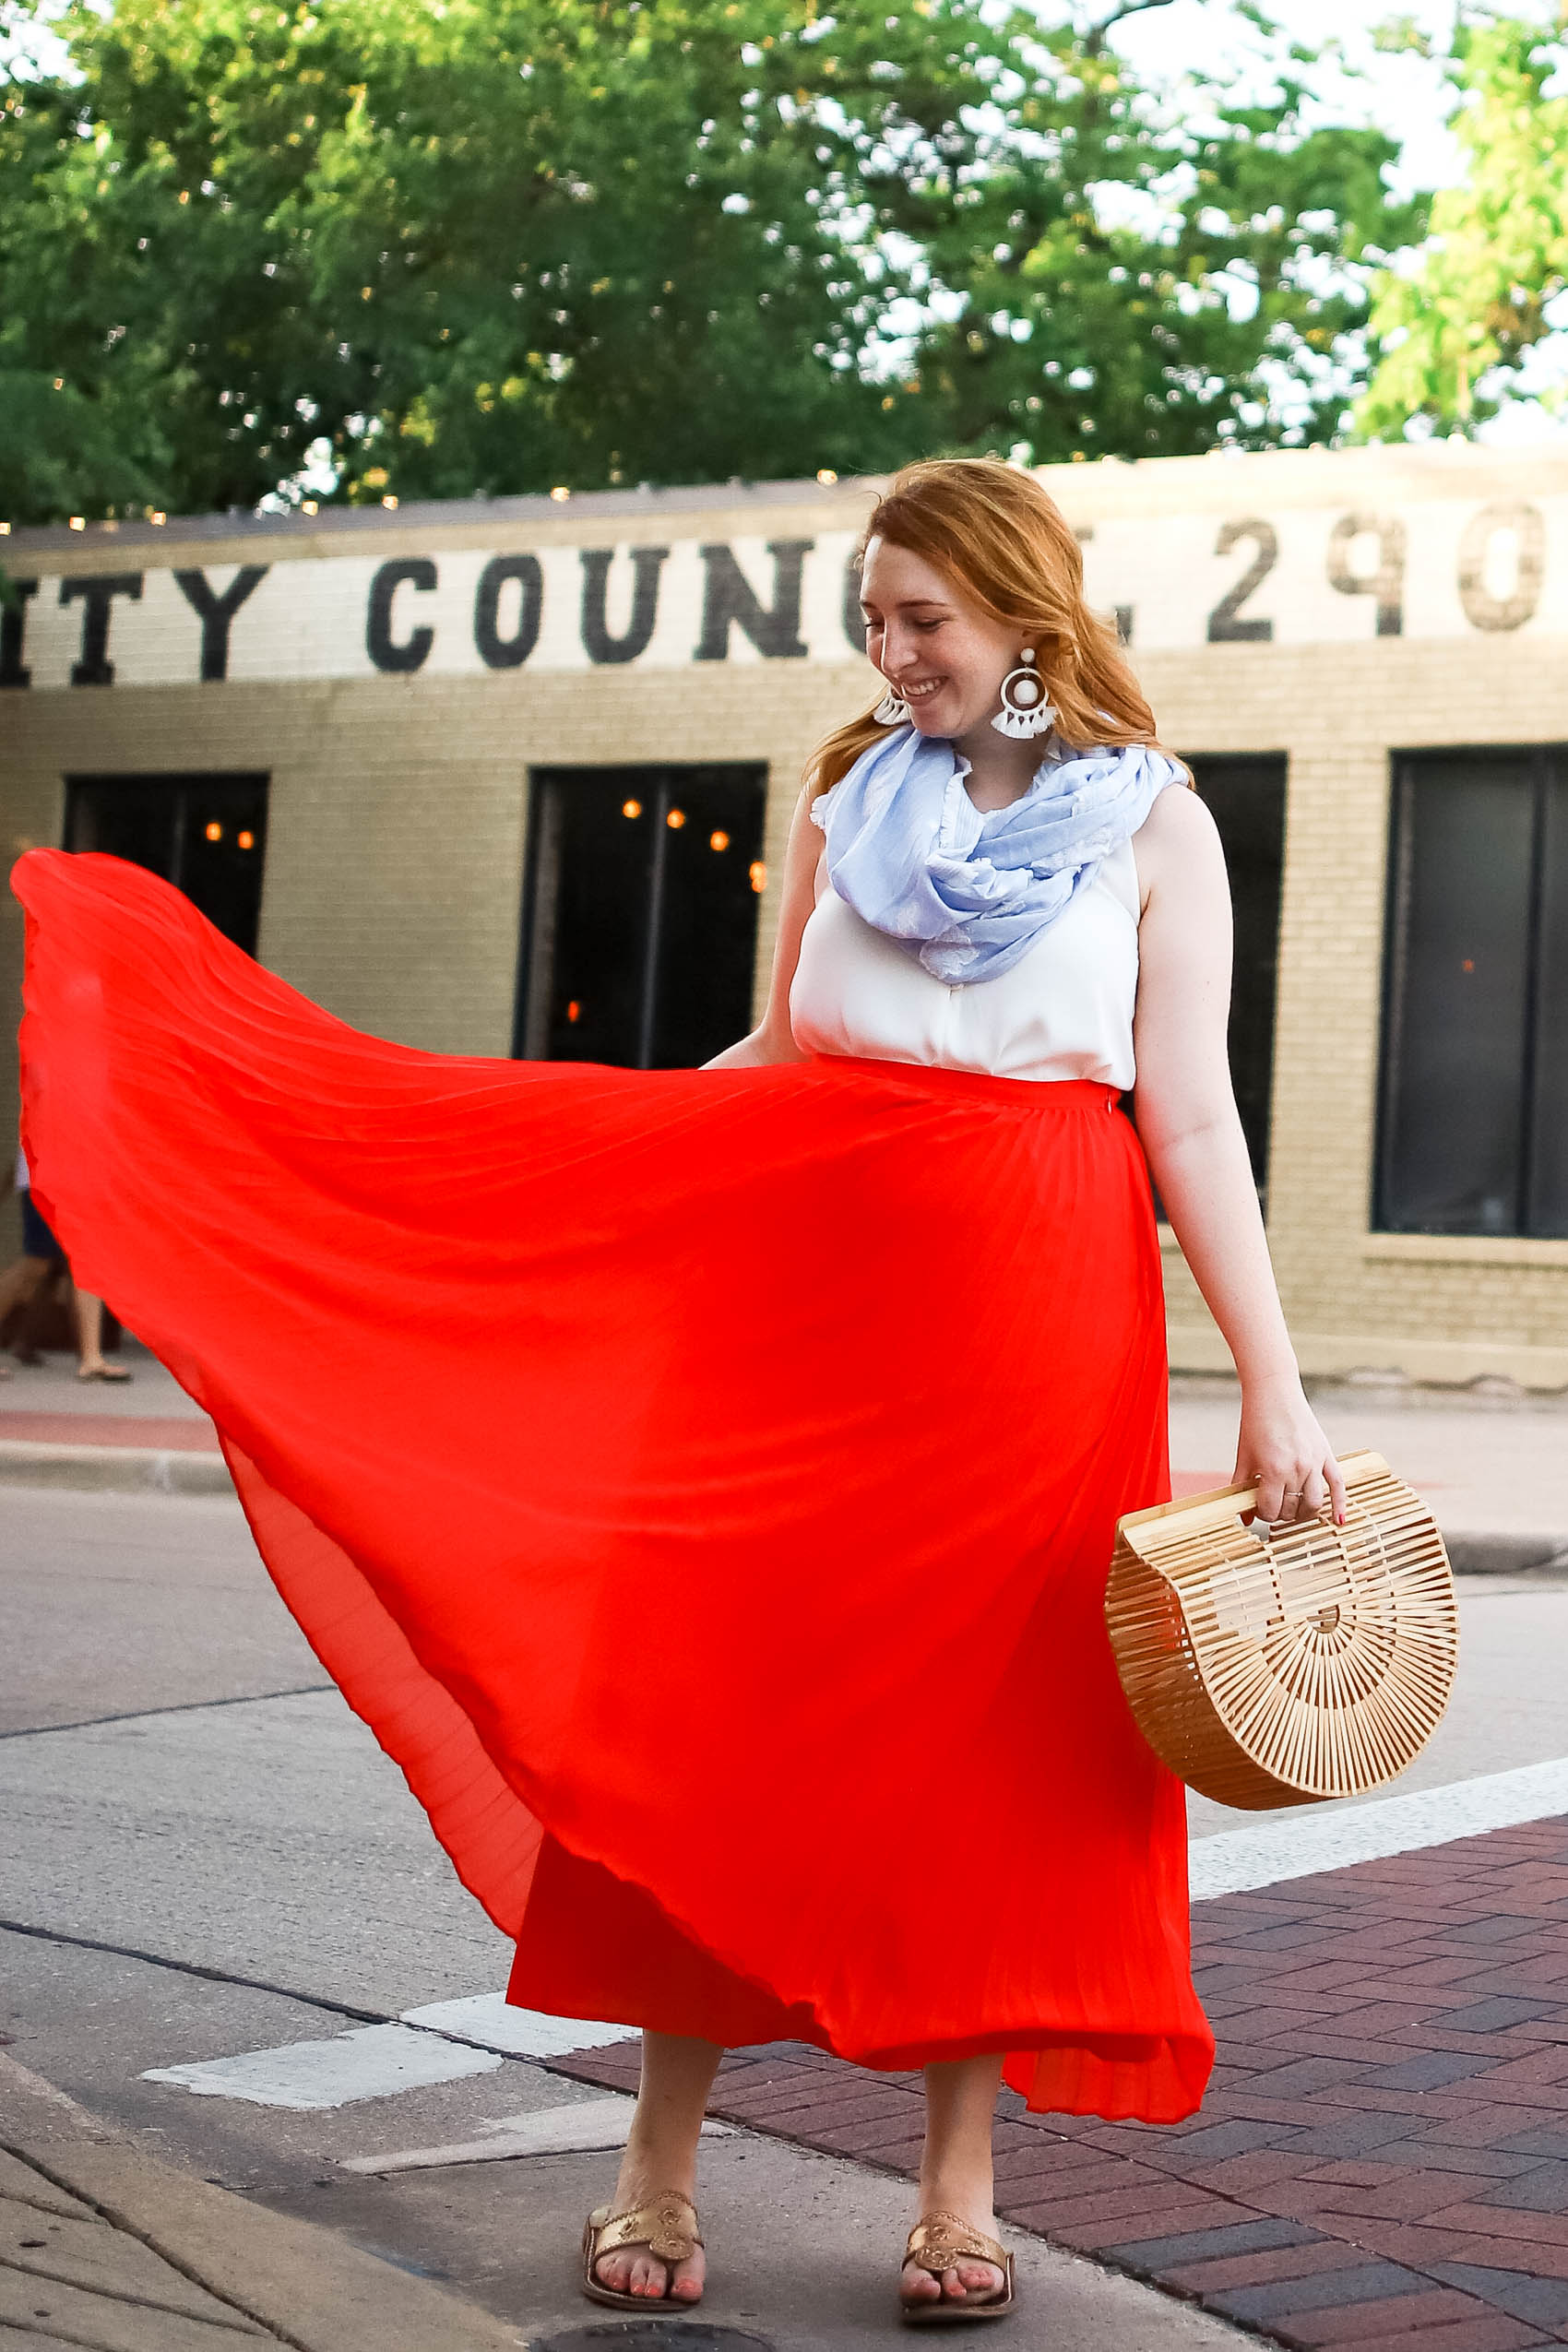 Dancing girl in red skirt for 31 things I've learned in 31 years